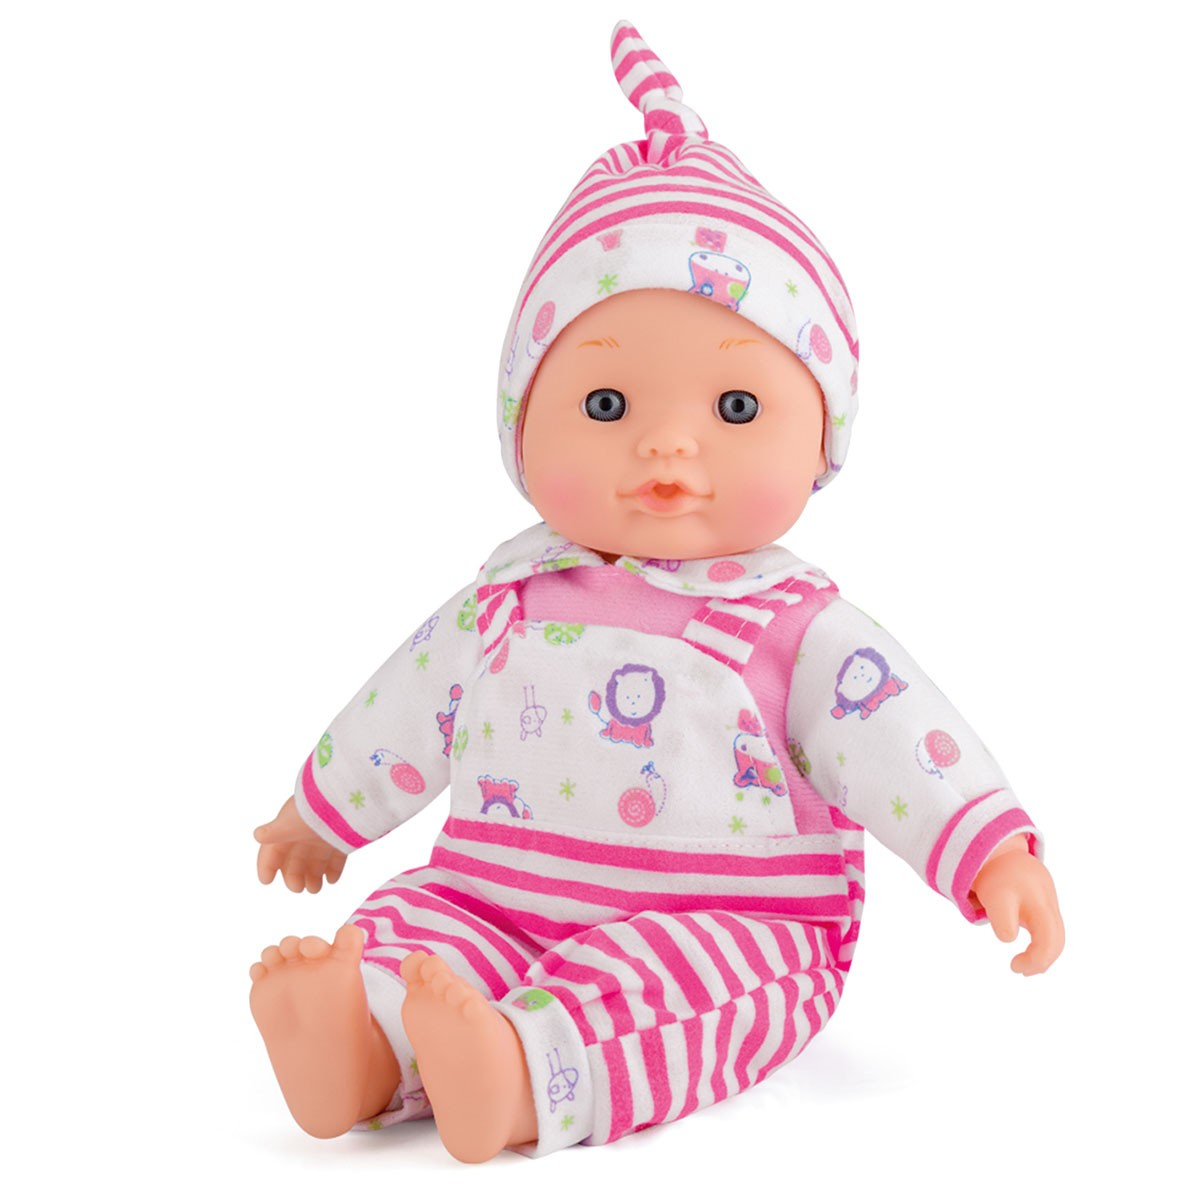 Snuggles Deluxe Baby Olivia Doll